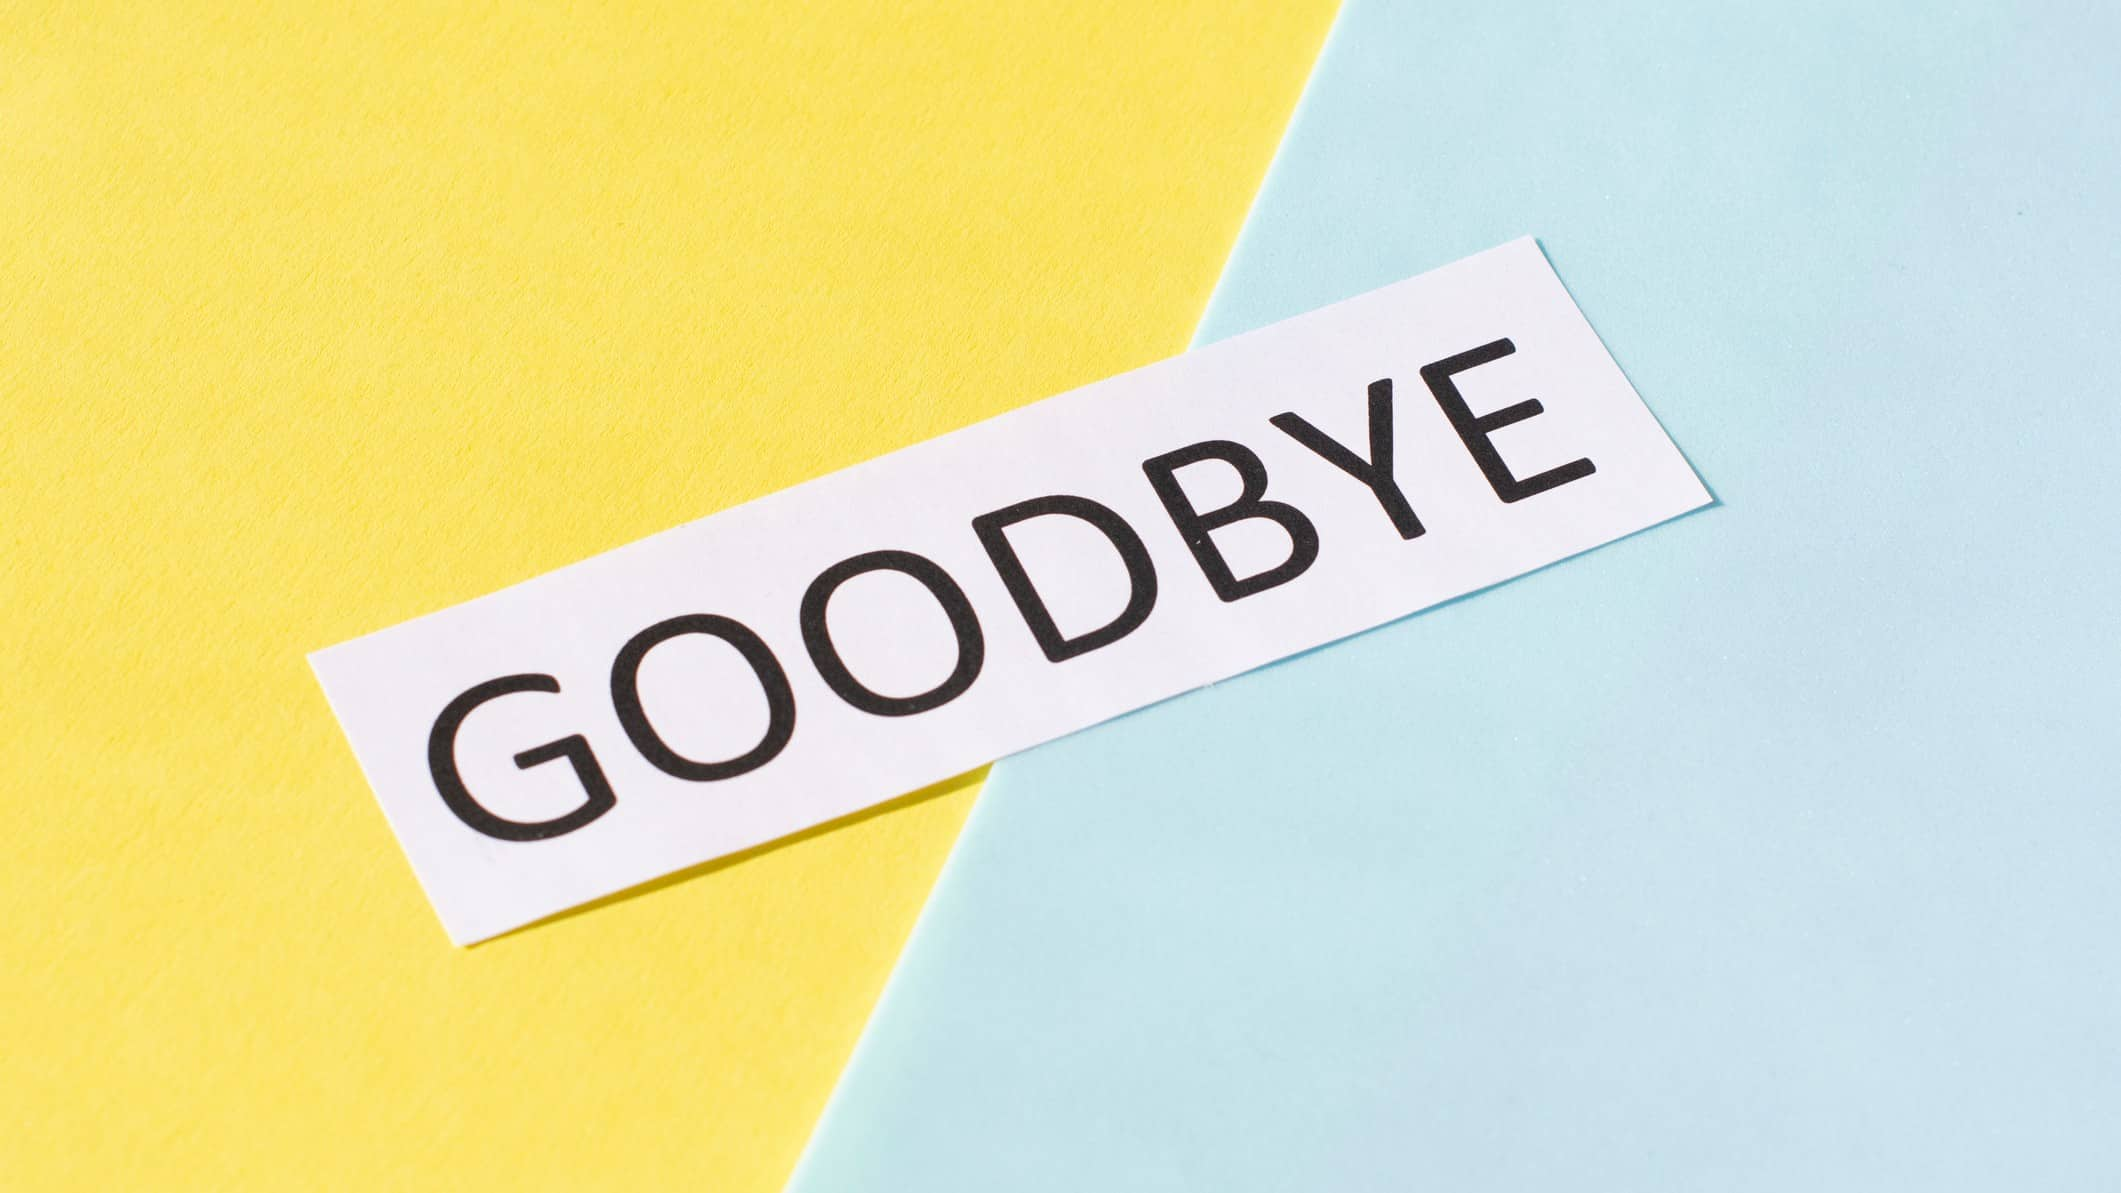 asx shares delisting represented by goodbye sign